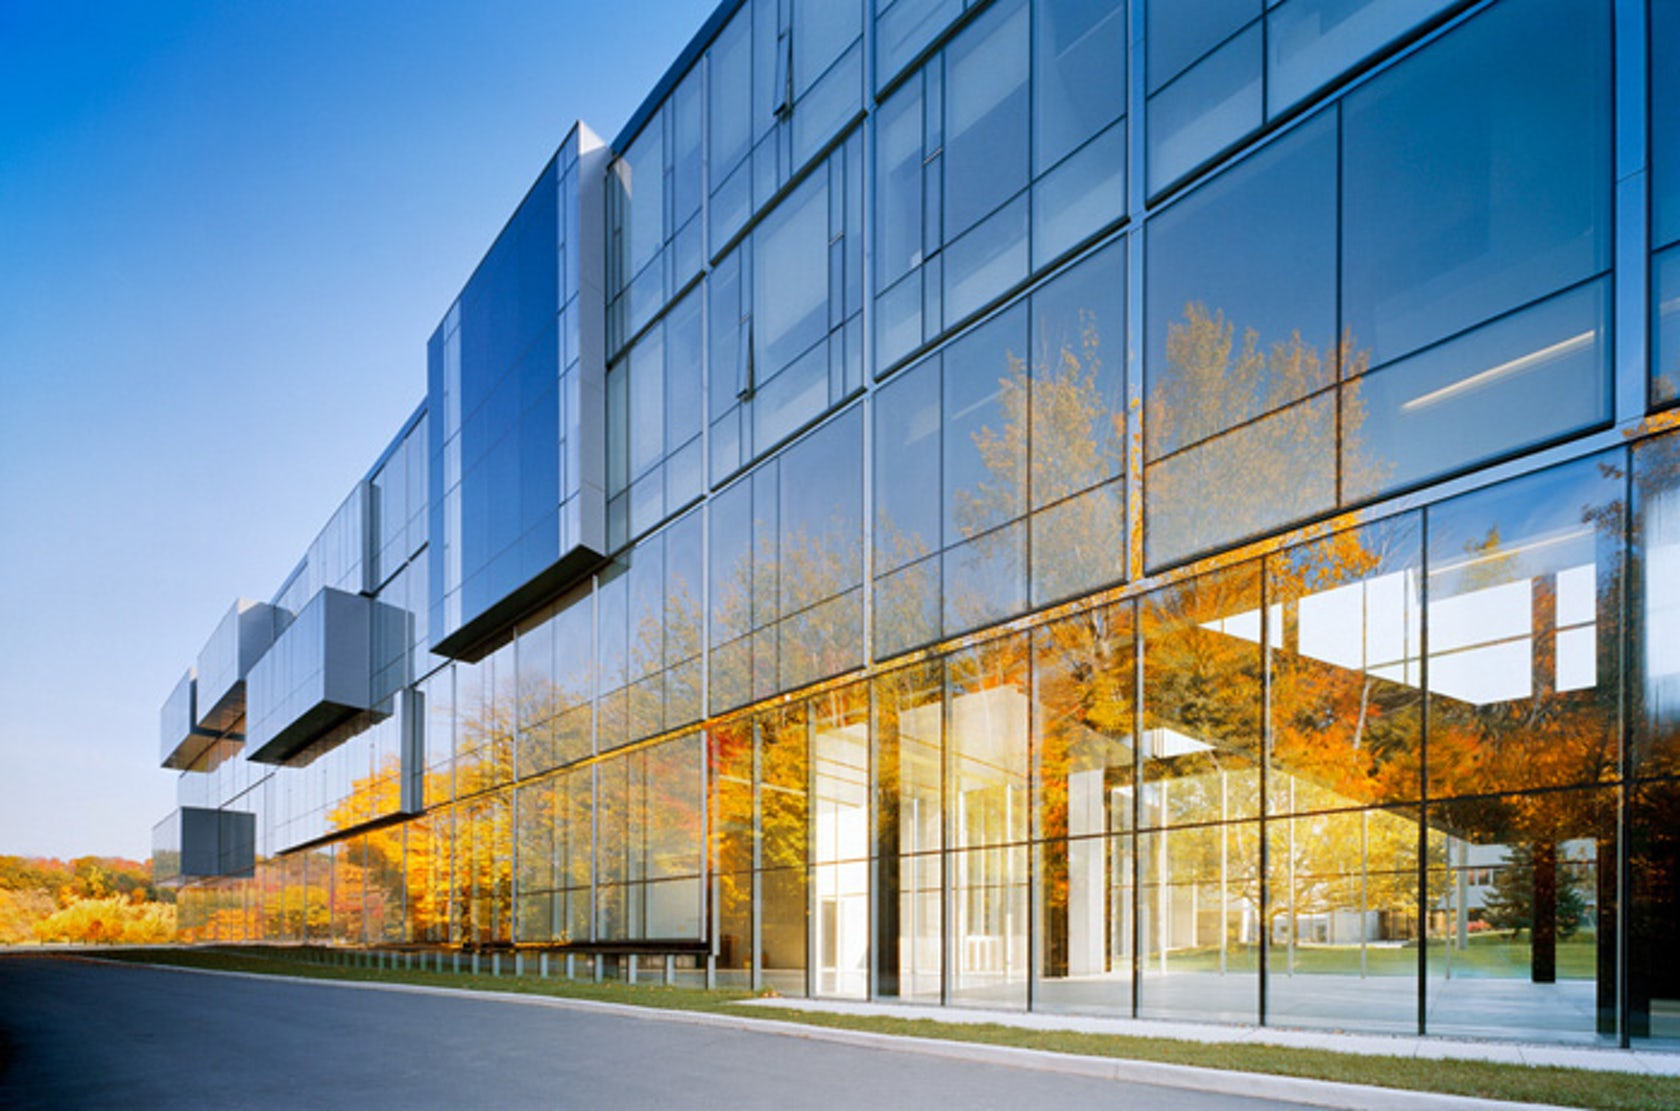 Cct communication culture and technology building for Chair in engineering design university of toronto